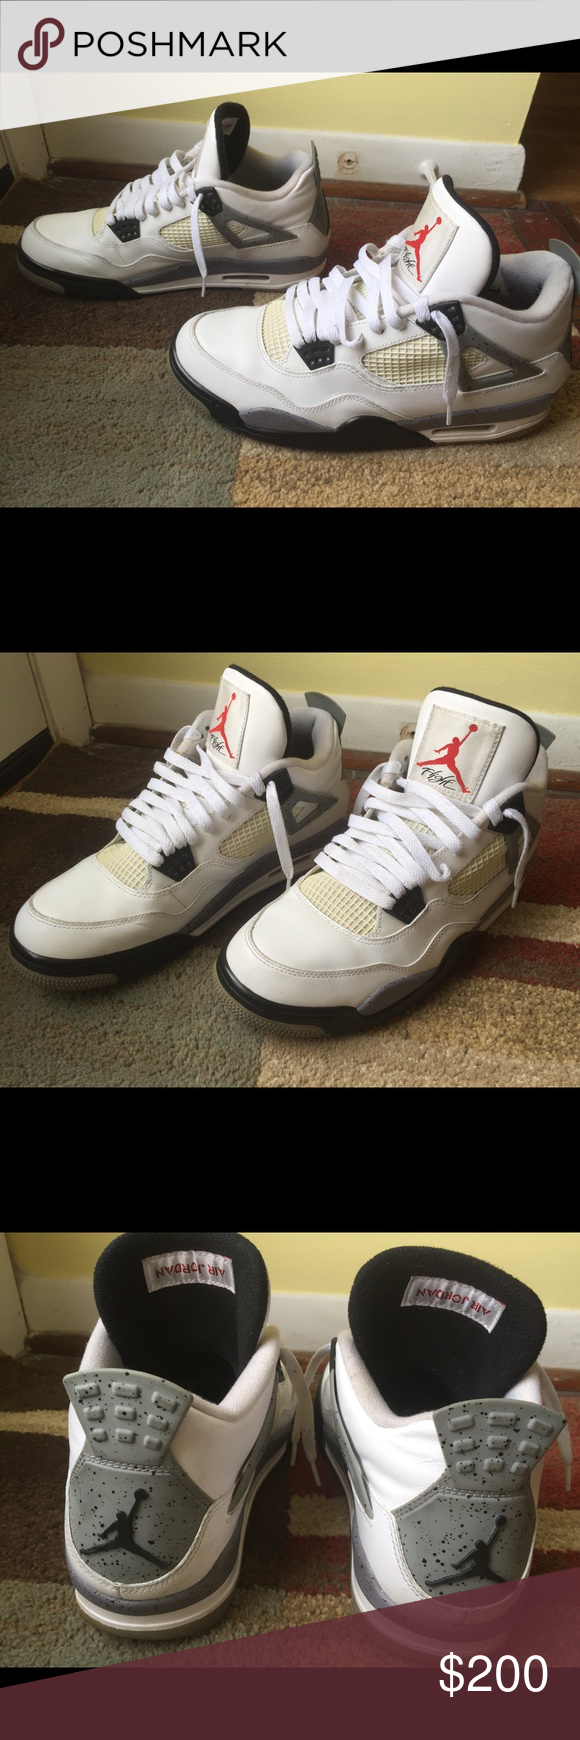 official photos f4a94 d19aa Jordan 4 Retro White Black Cement Grey 308497-103 2011 model. These shoes  are